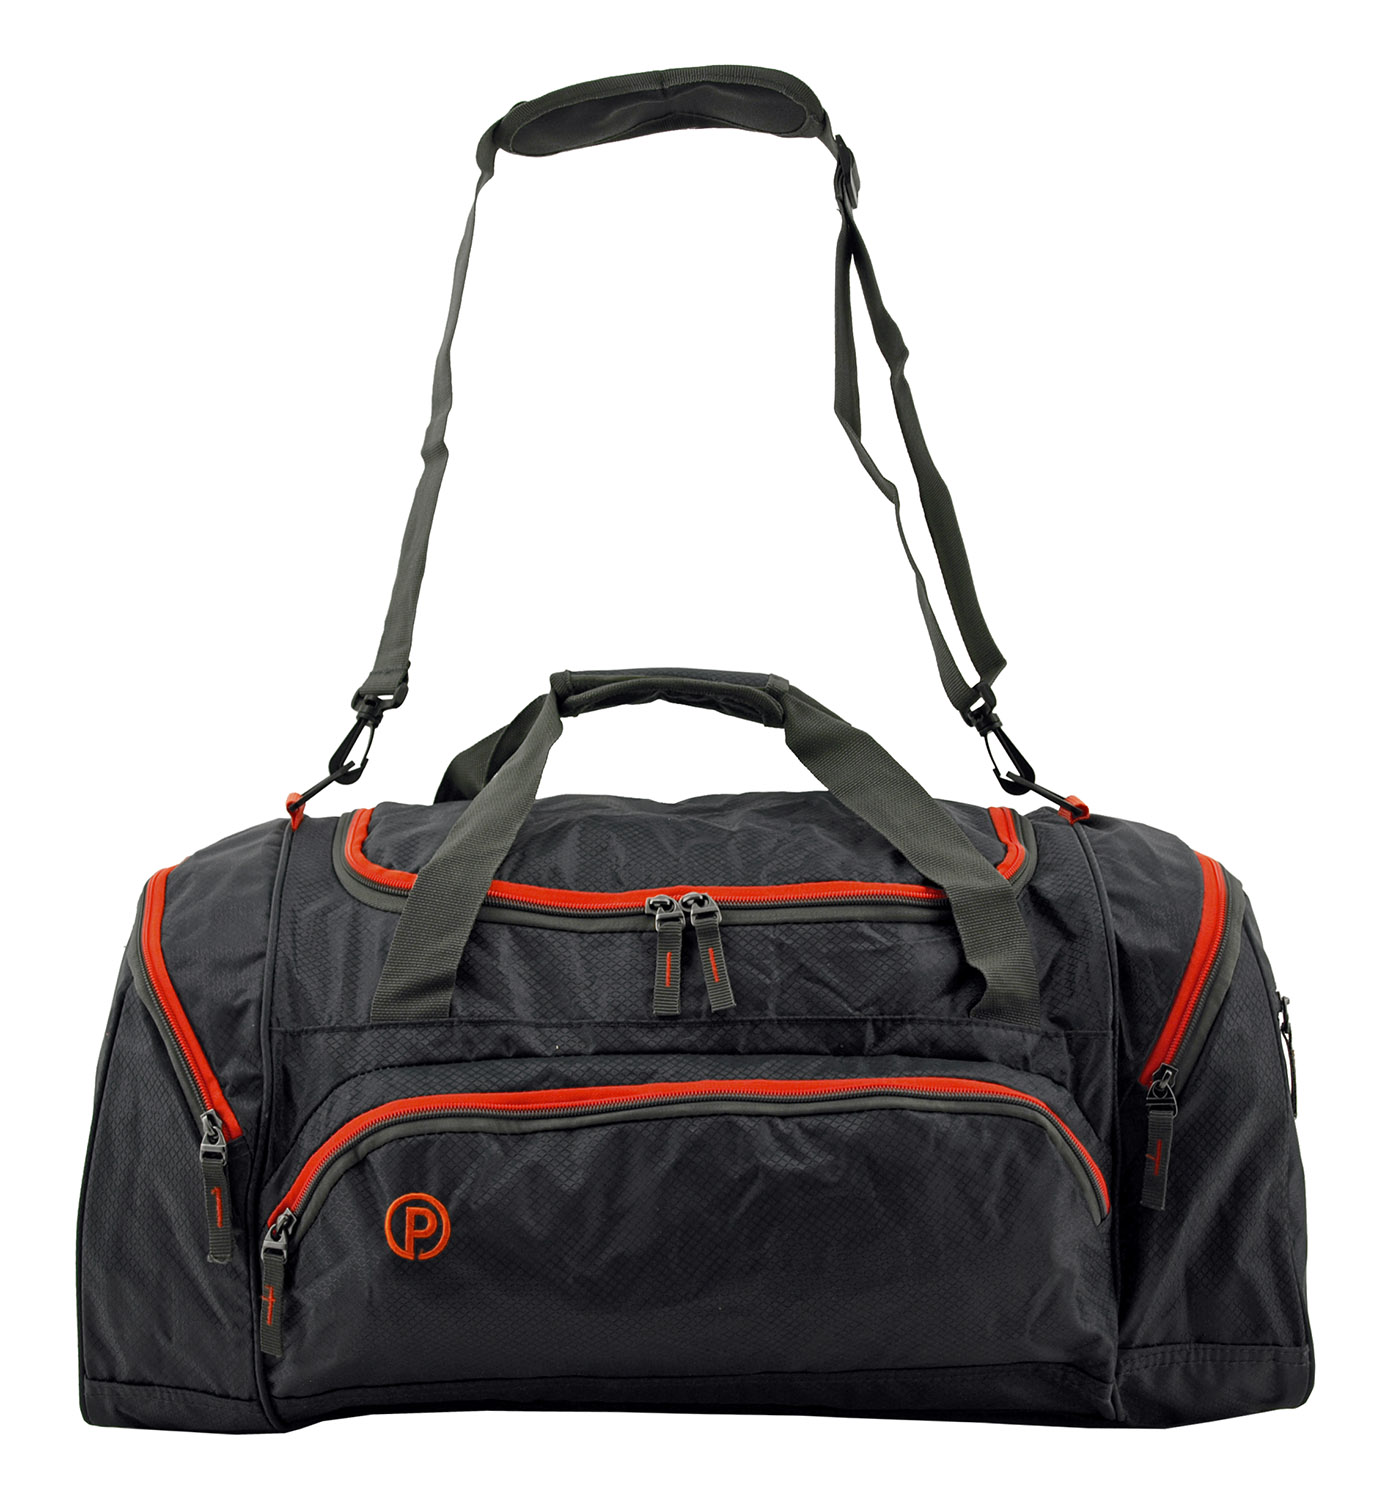 24 in Protégé Carry On Travel Duffel Bag - Grey and Red